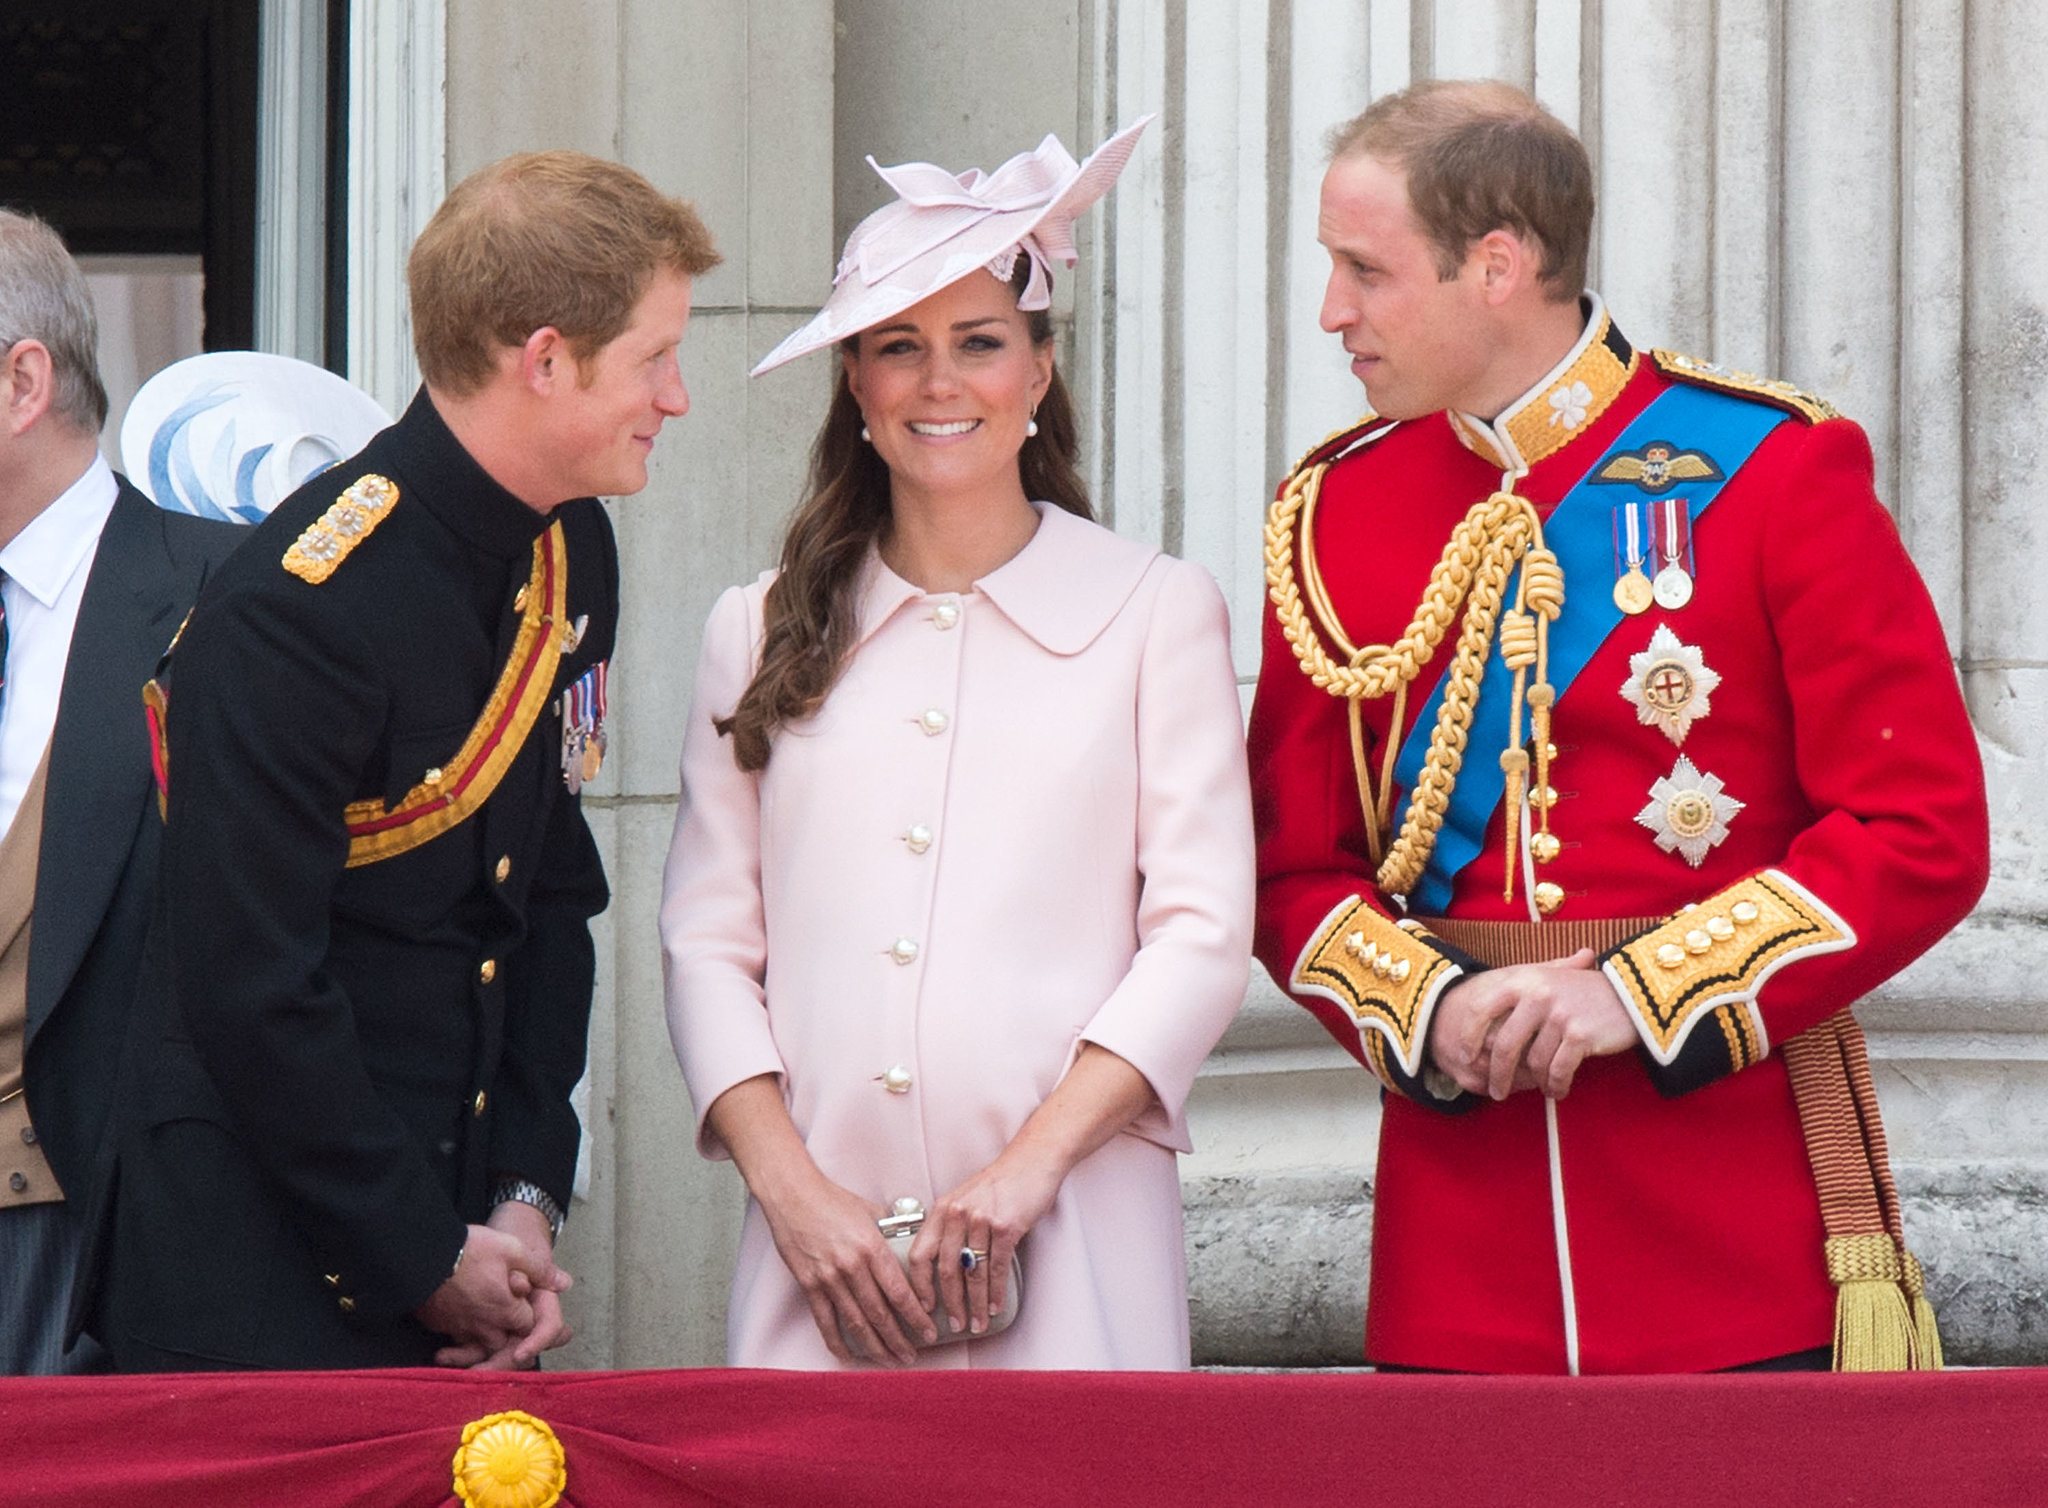 In June 2013, Kate and William shared a joke with Prince Harry while standing on the balcony at Buckingham Palace for the Trooping the Colour parade.